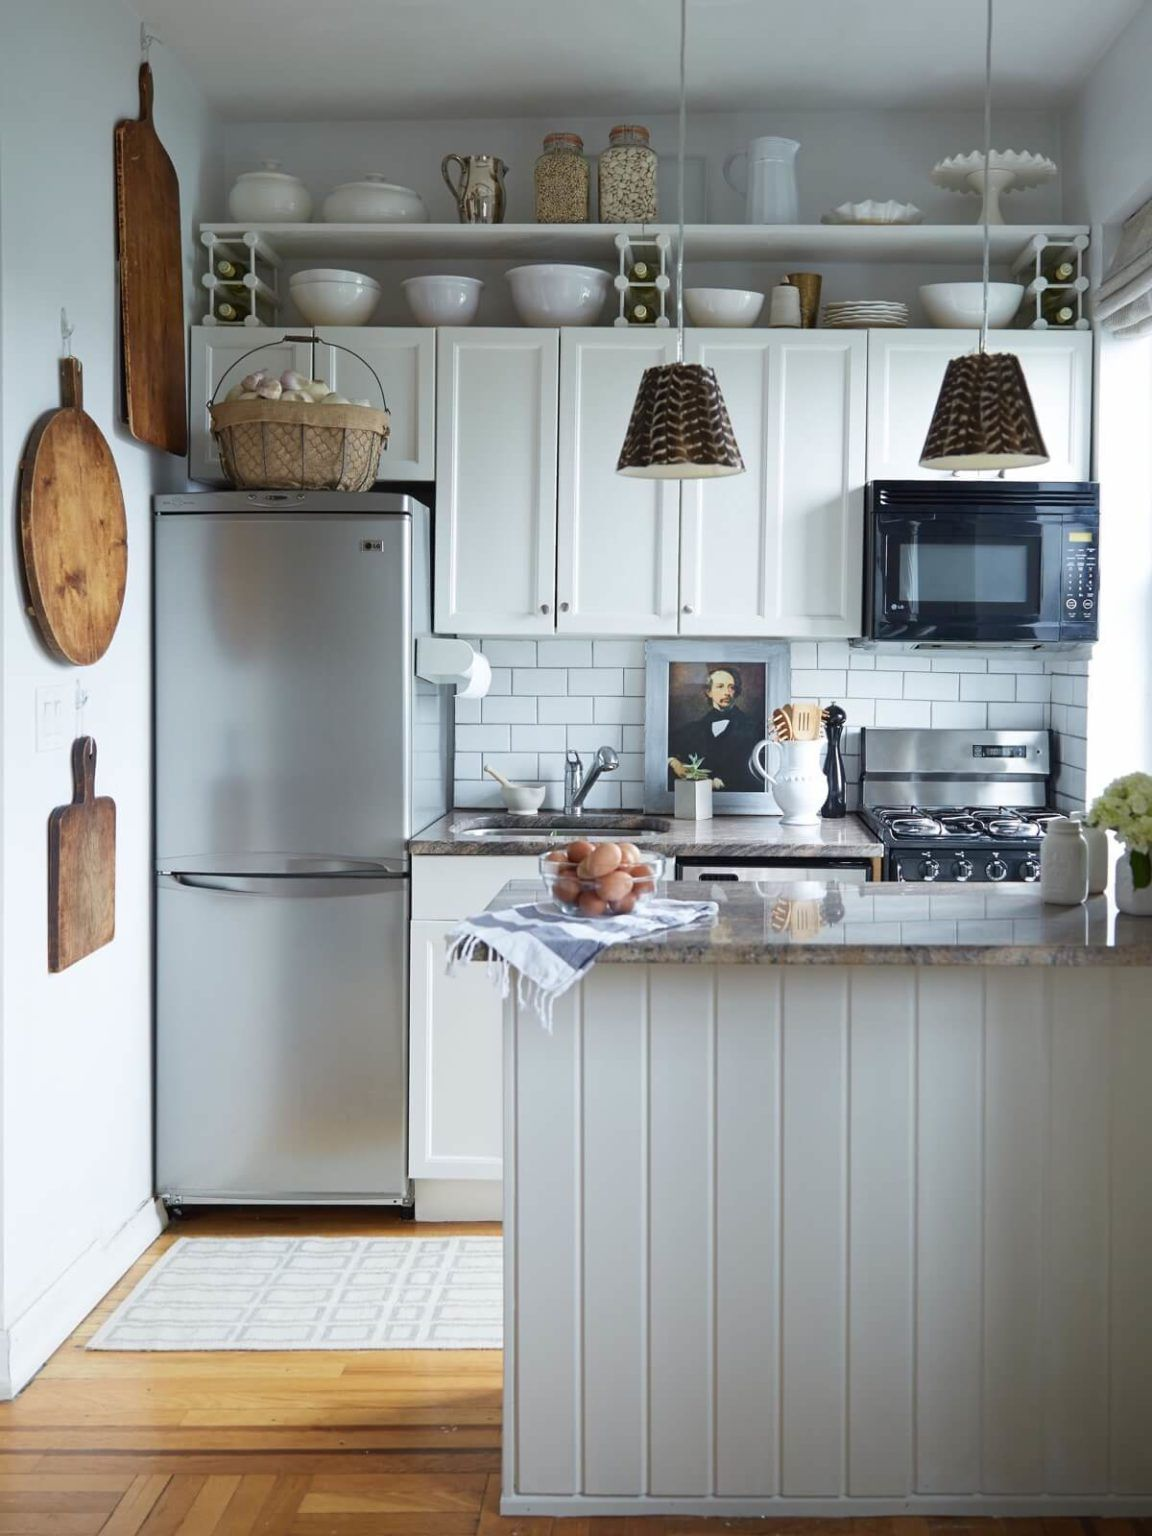 25 Great Small Kitchen Ideas That Can Inspire You Enthusiasthome Kitchen Remodel Small Kitchen Remodel Small American Kitchens